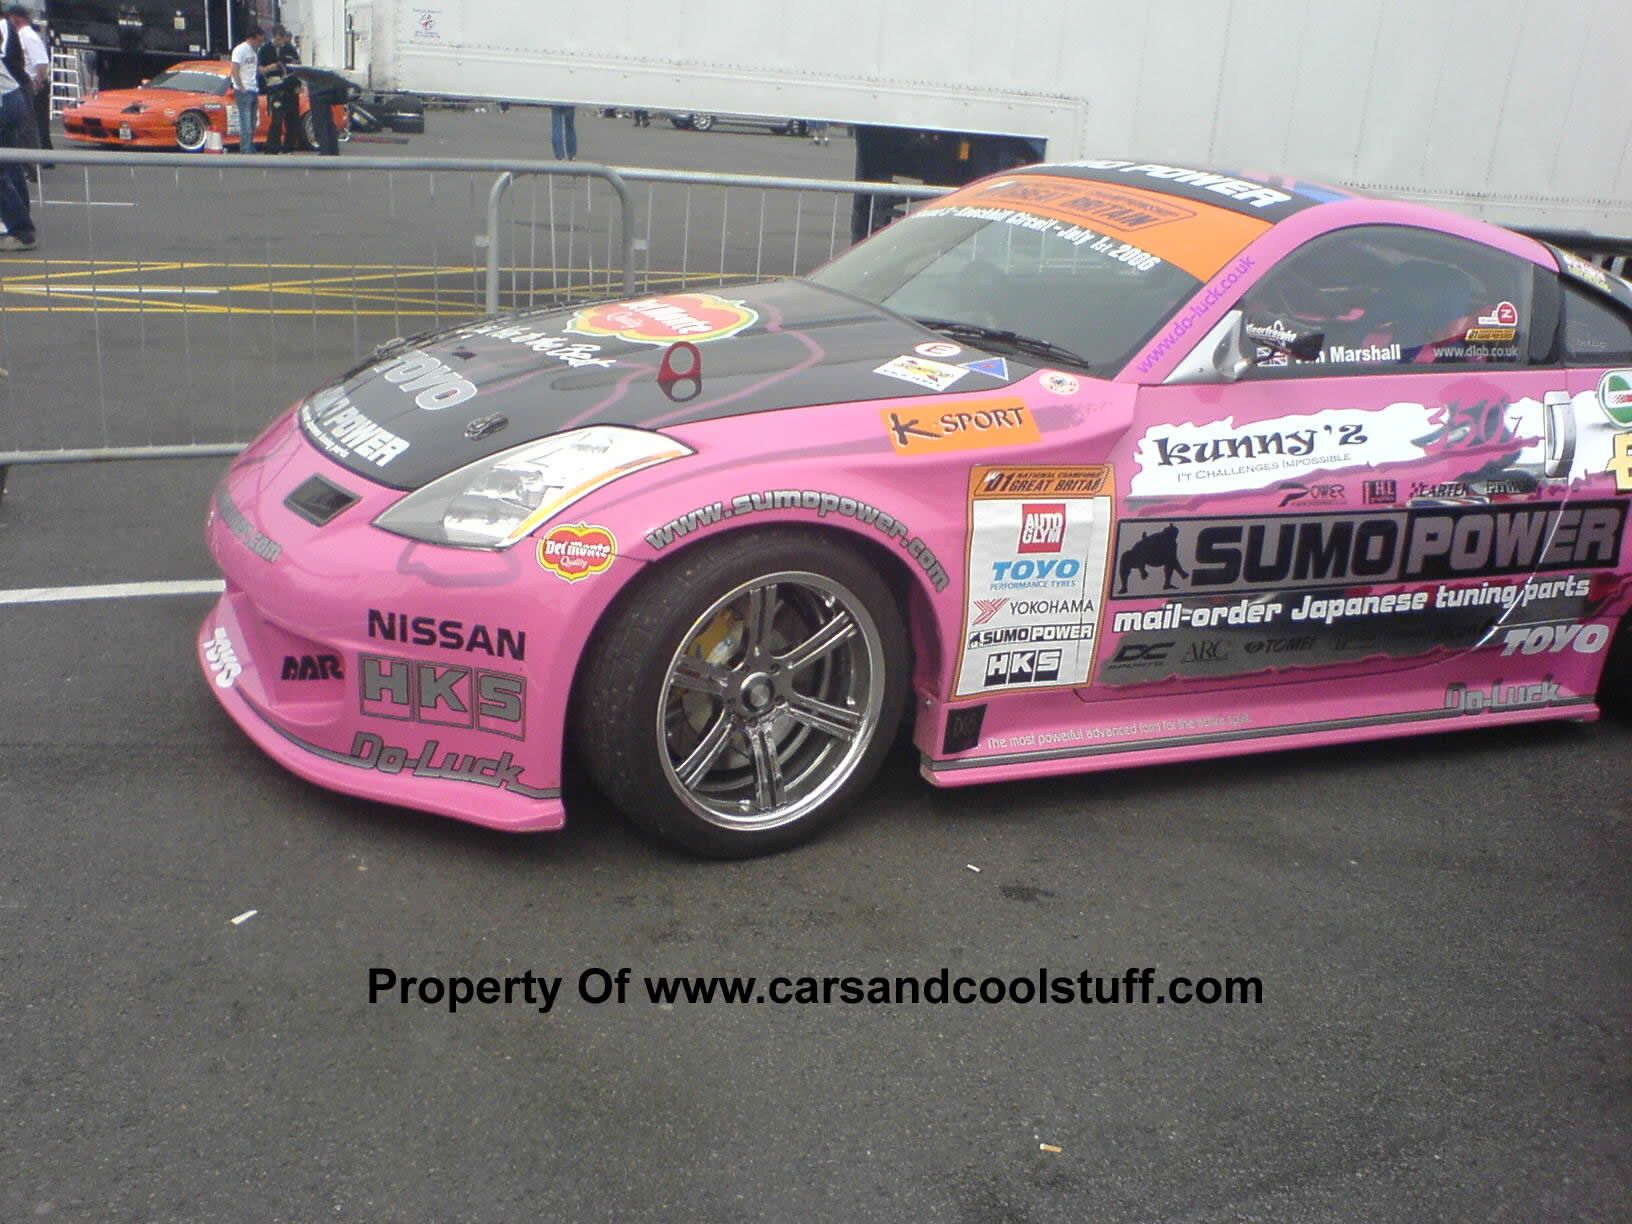 Com Photos And Video Photo Gallery Sumo Power Nissan 350z Pink Nissan 350z Nissan Toy Car